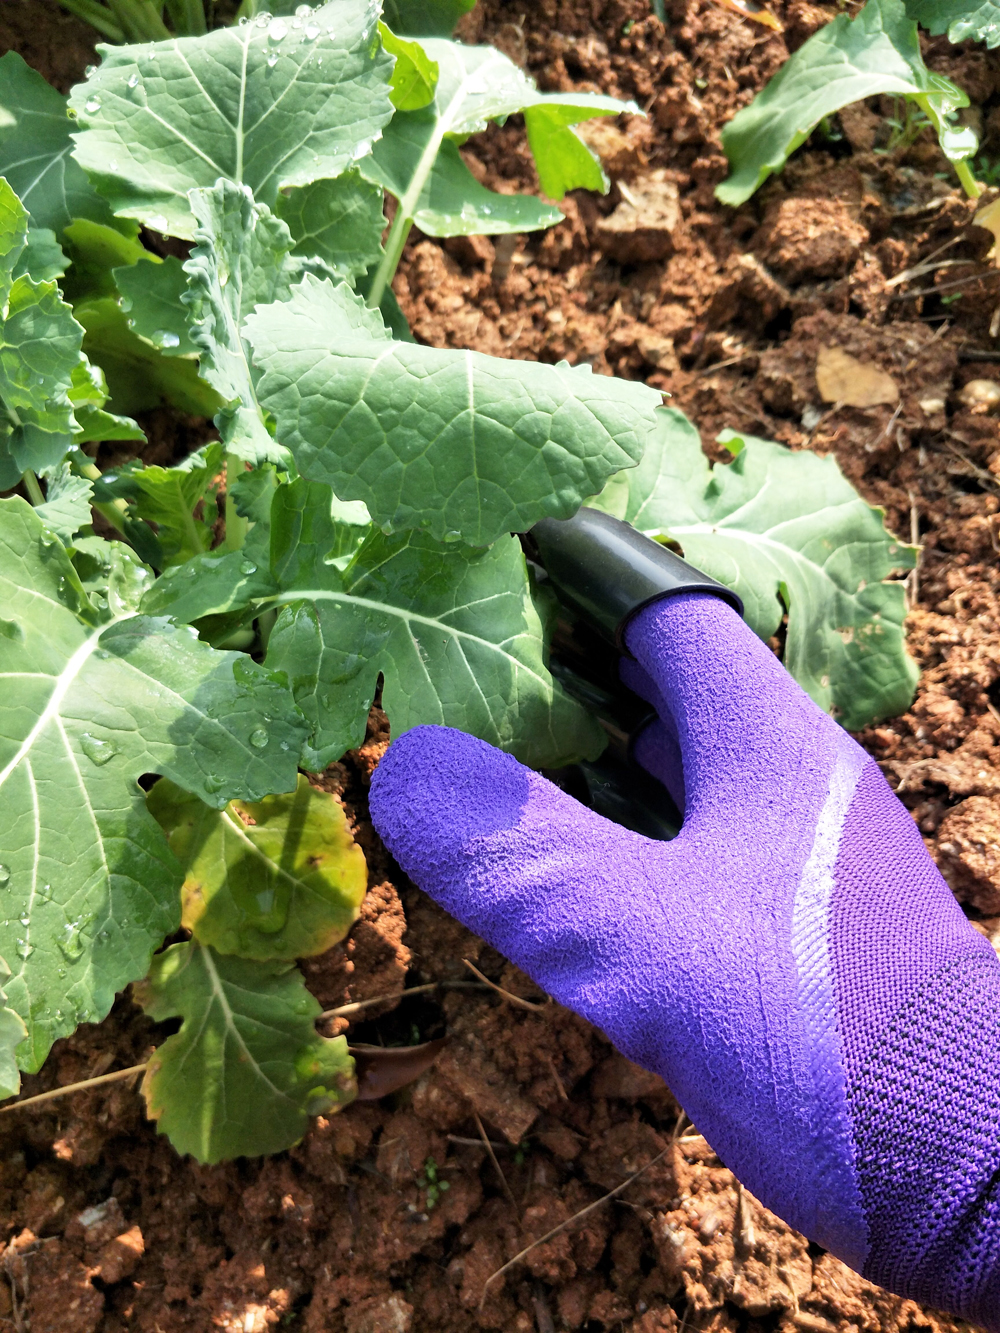 Protective Gears Garden Gloves 4 Hand Claw Abs Plastic Rubber Gloves Quick Excavation Plant Waterproof Insulation Home Living Essential Gadgets Reputation First Tools